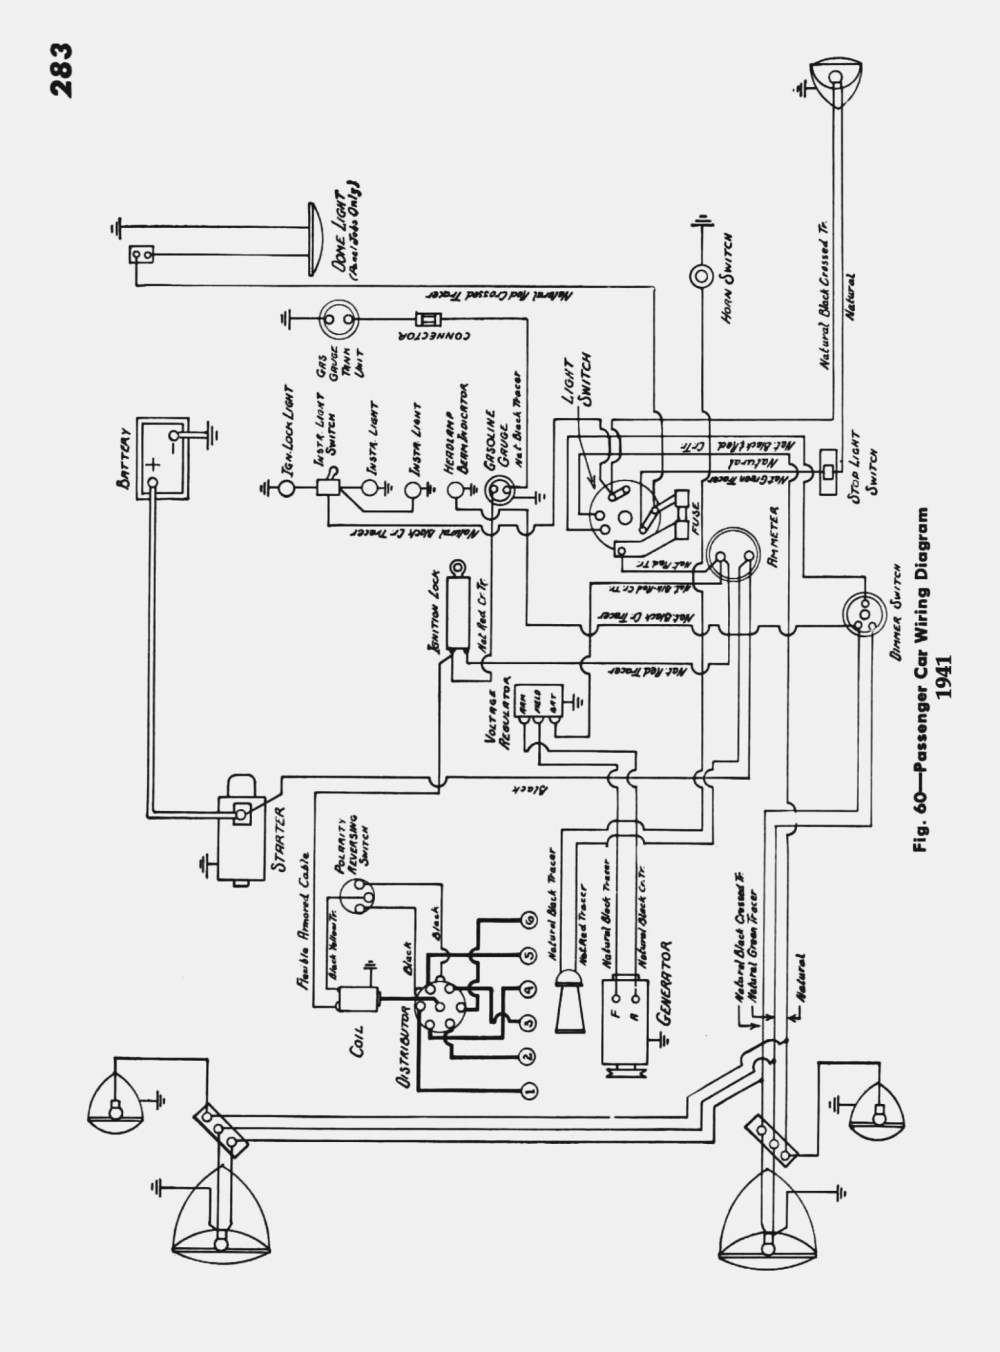 medium resolution of international truck dpf wiring diagram wiring diagraminternational truck dpf wiring diagram 2